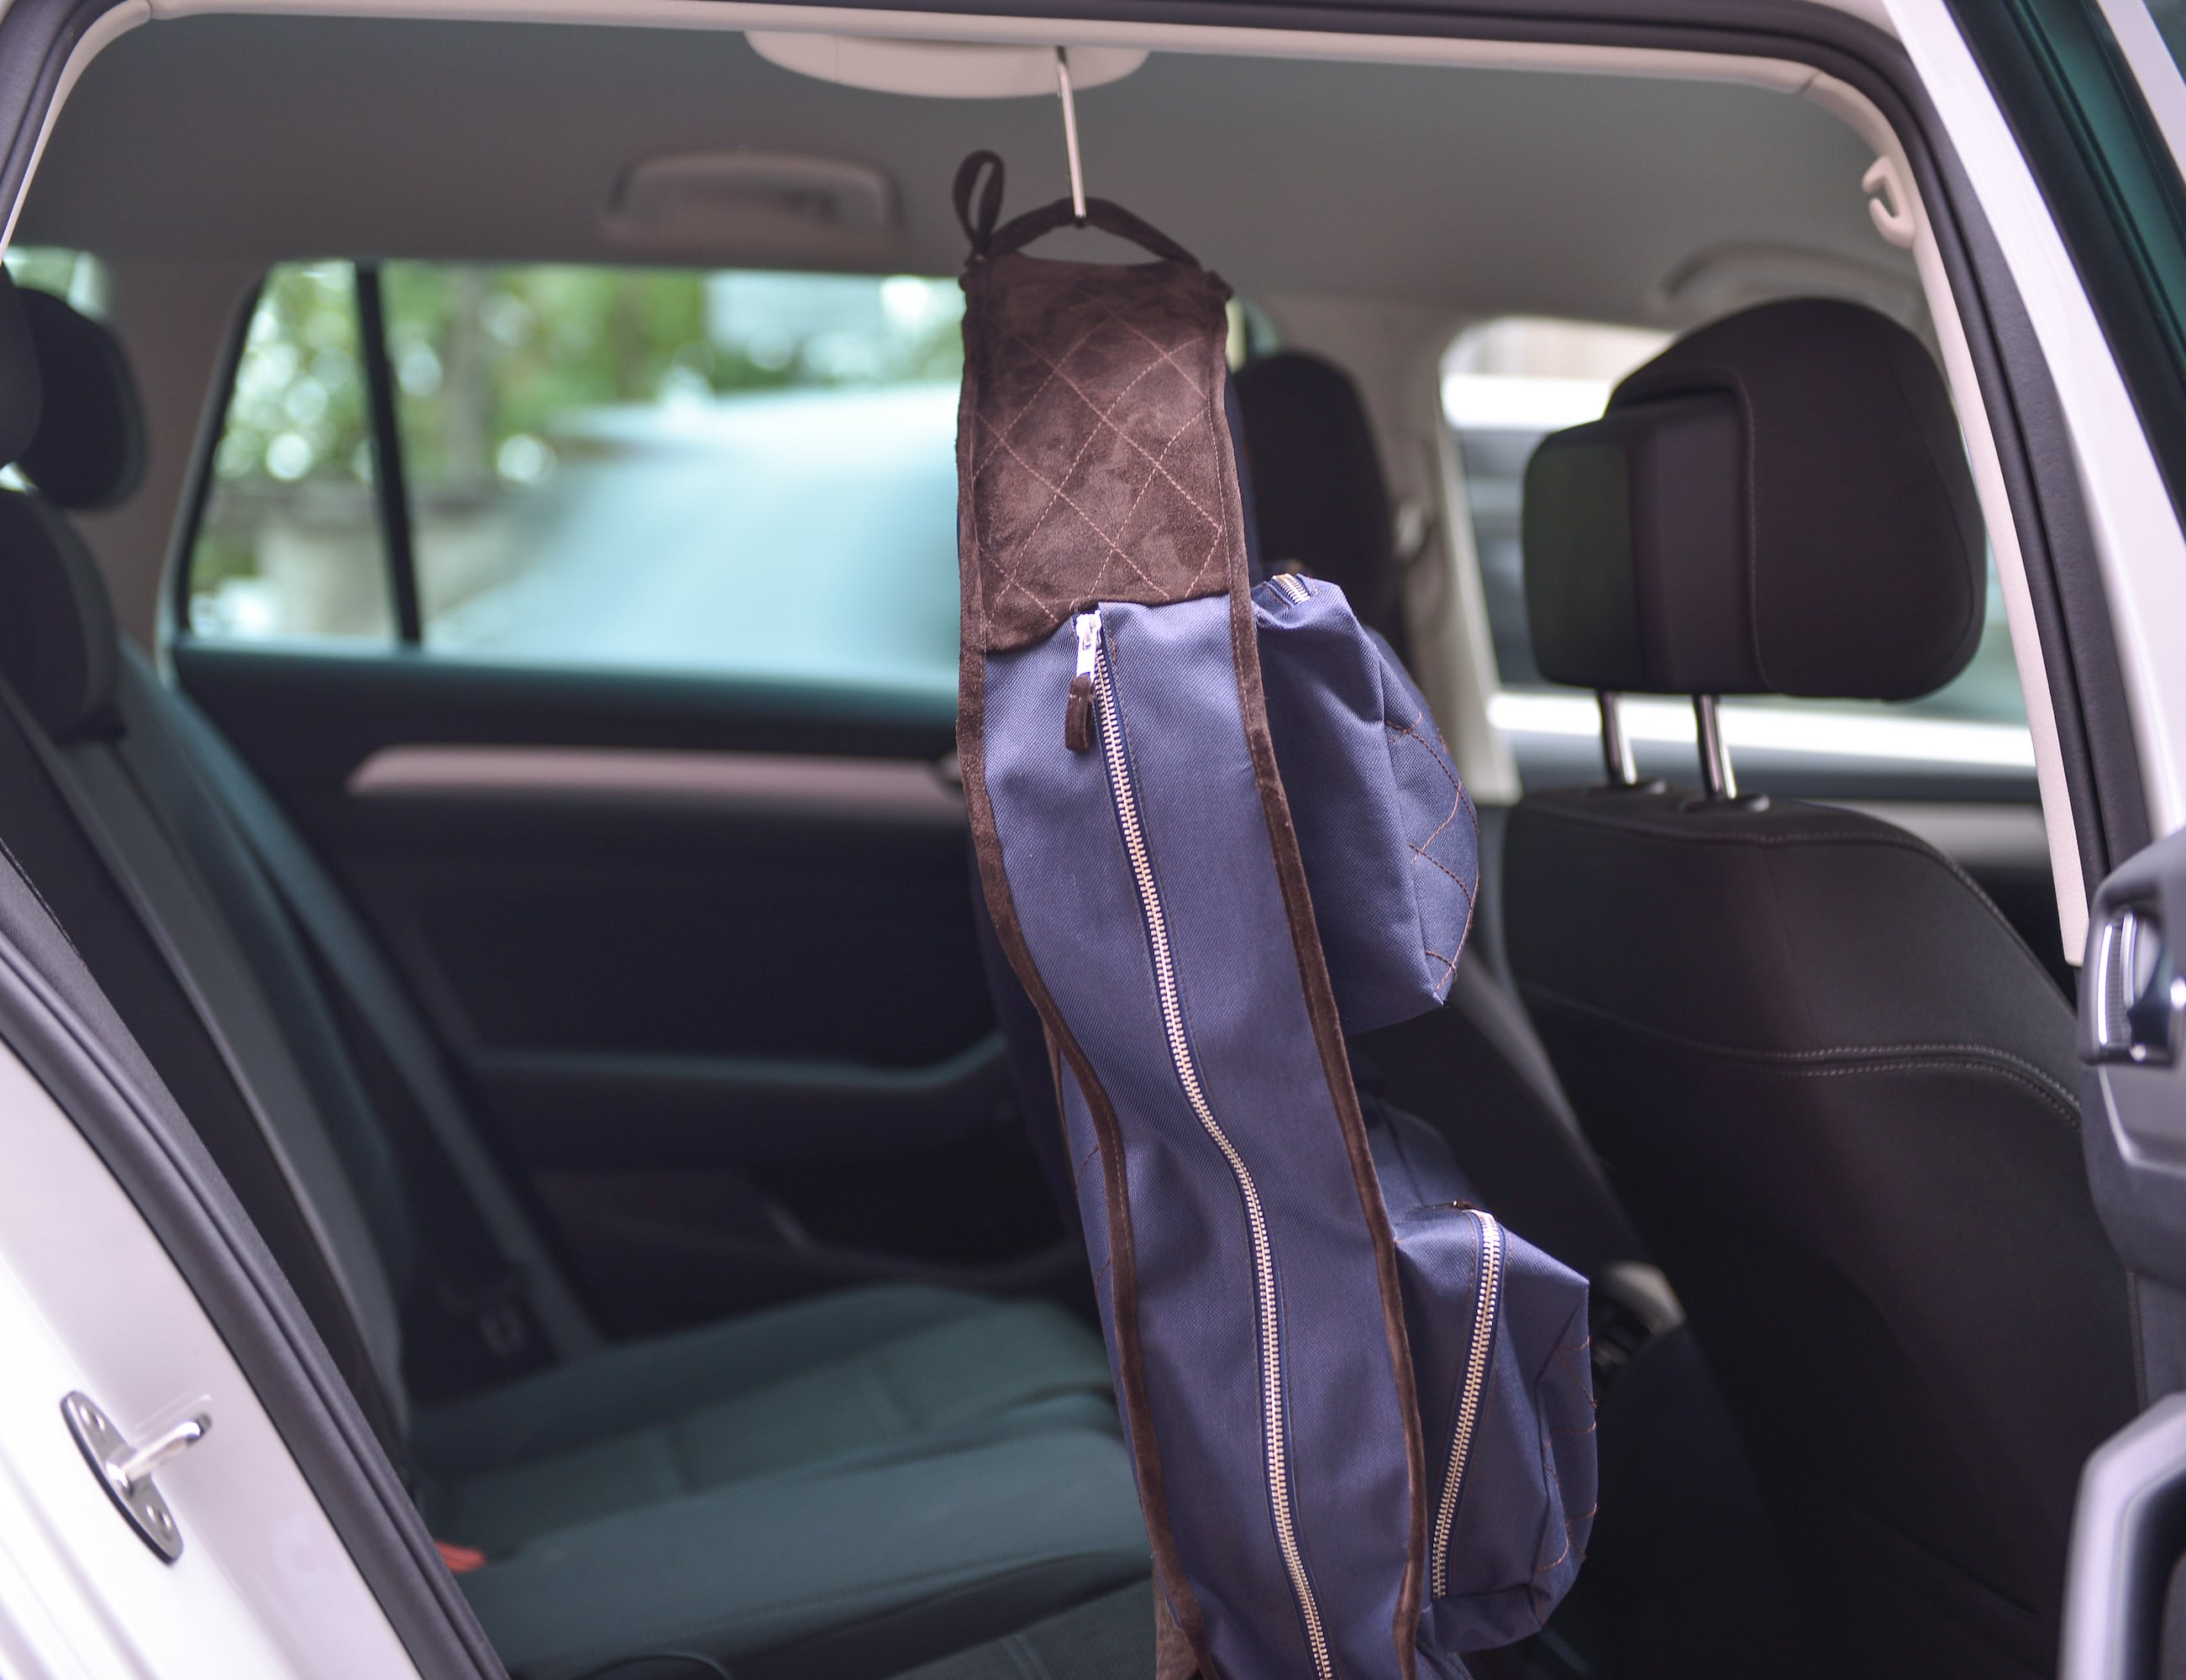 MADO Hanger Travel Bag will make your road trips easier